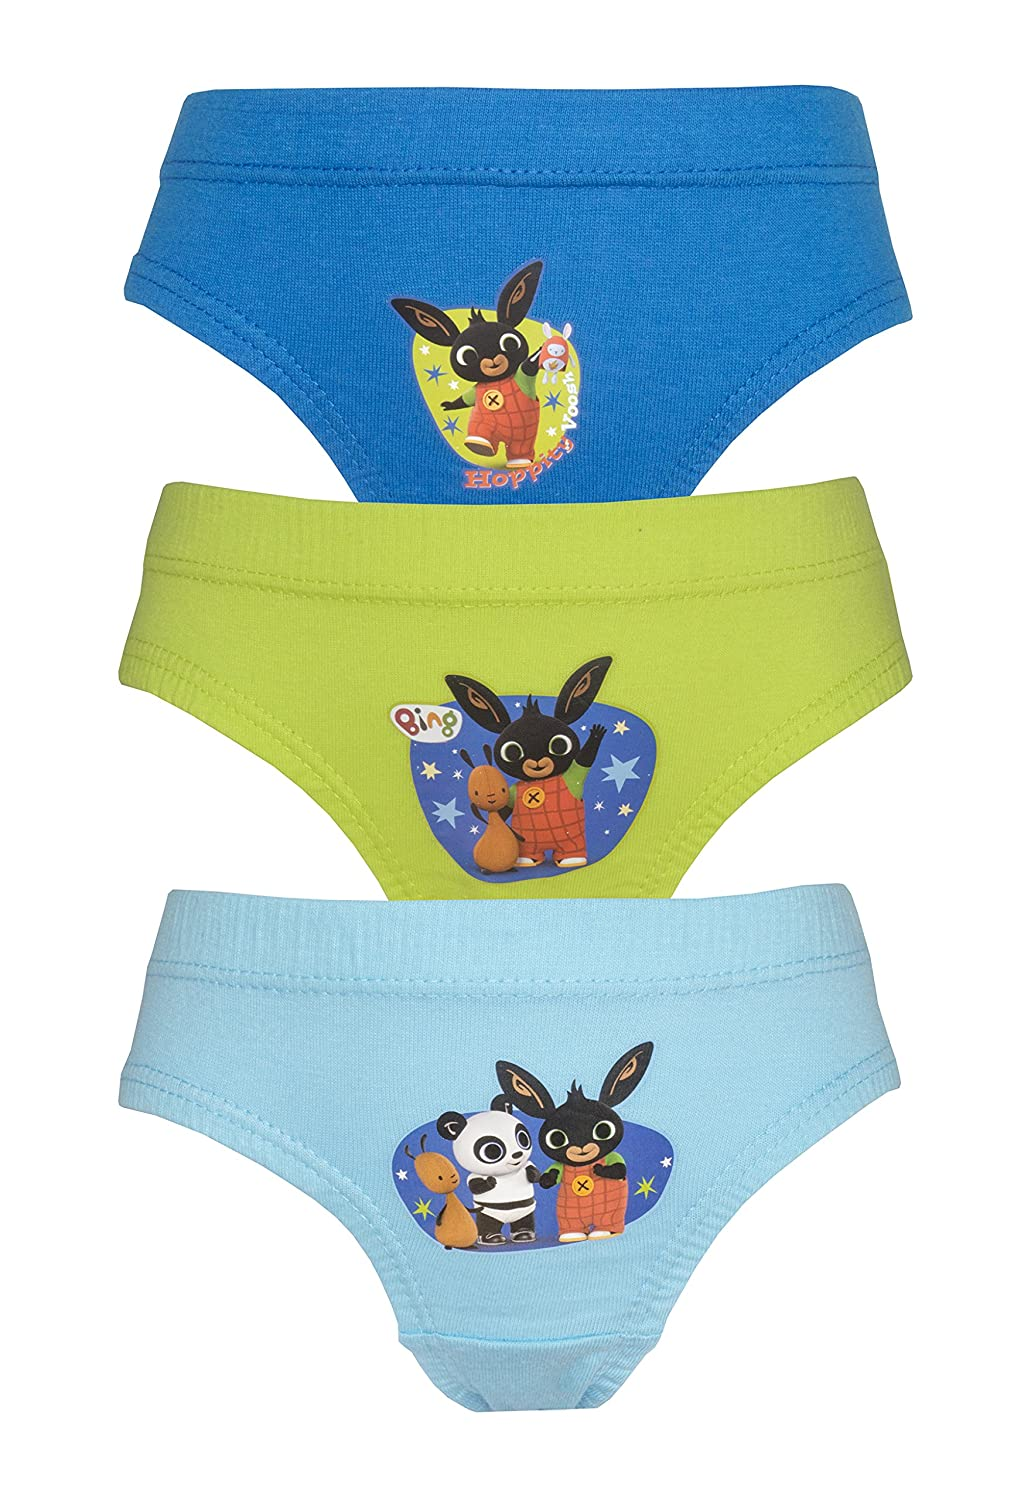 Cartoon Character Products Bing Boys 3 Pack Pants/Briefs Various Designs 18 Months - 5 yers